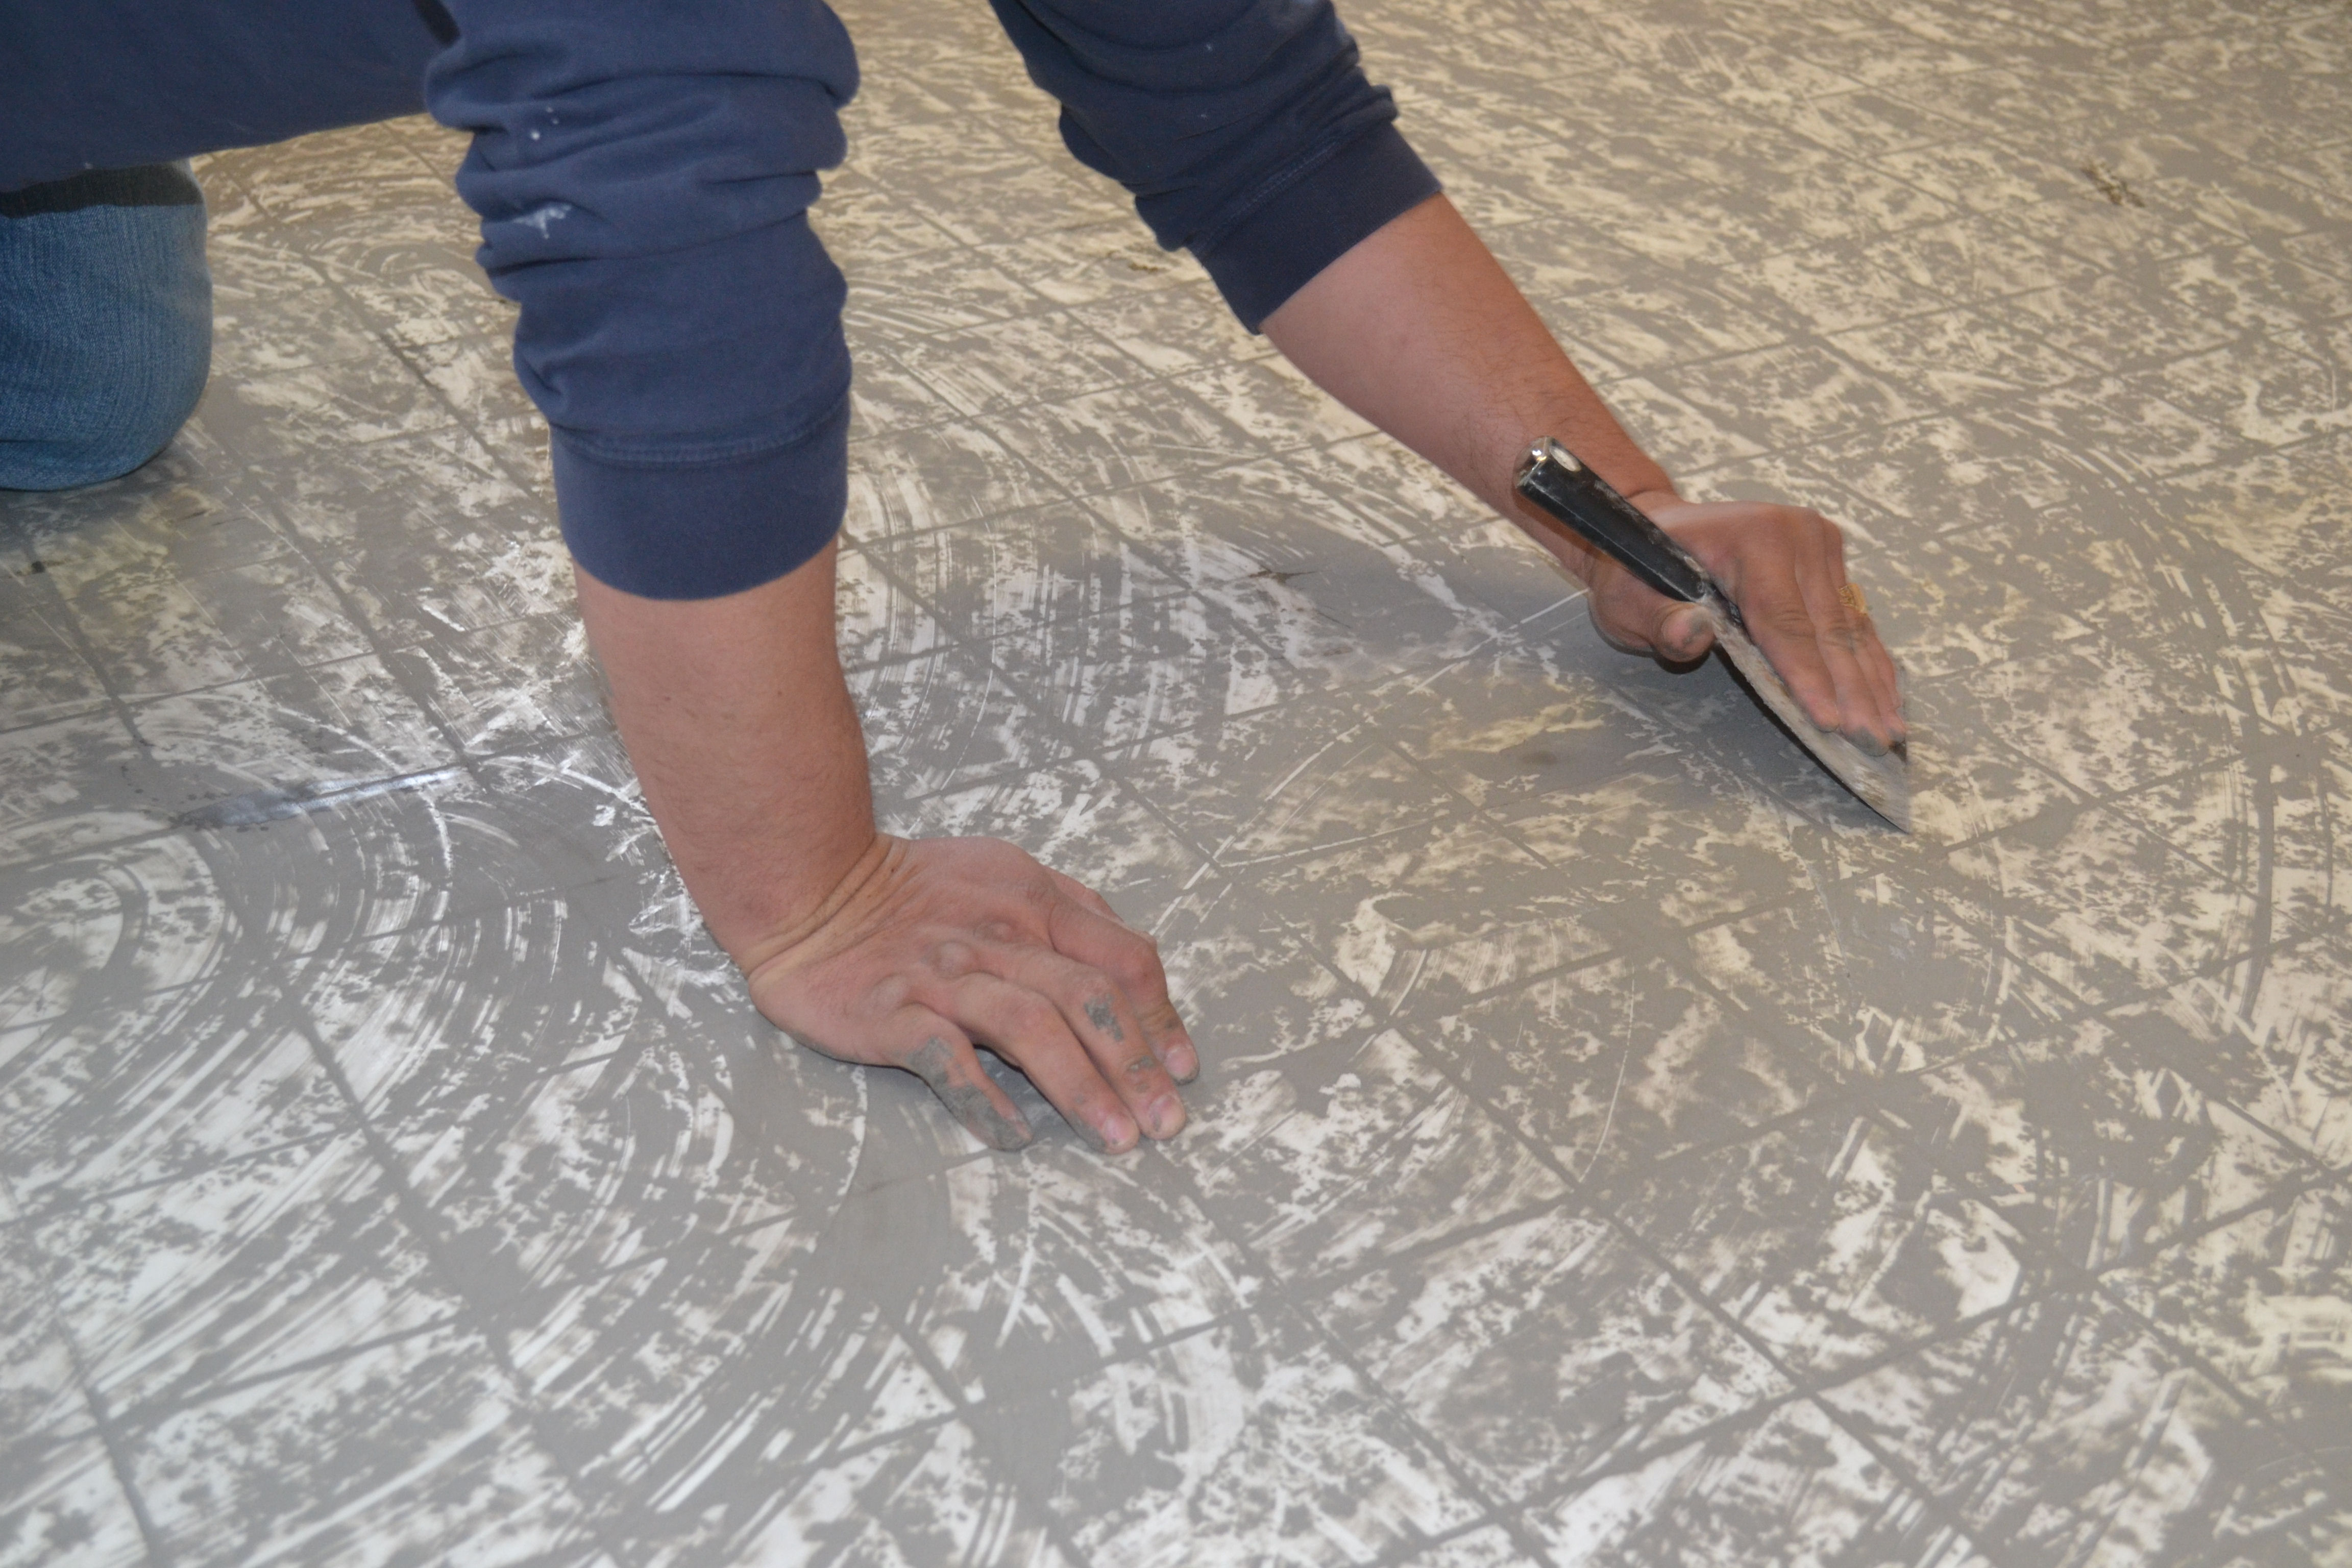 How To Install Vinyl Flooring Pro Construction Guide